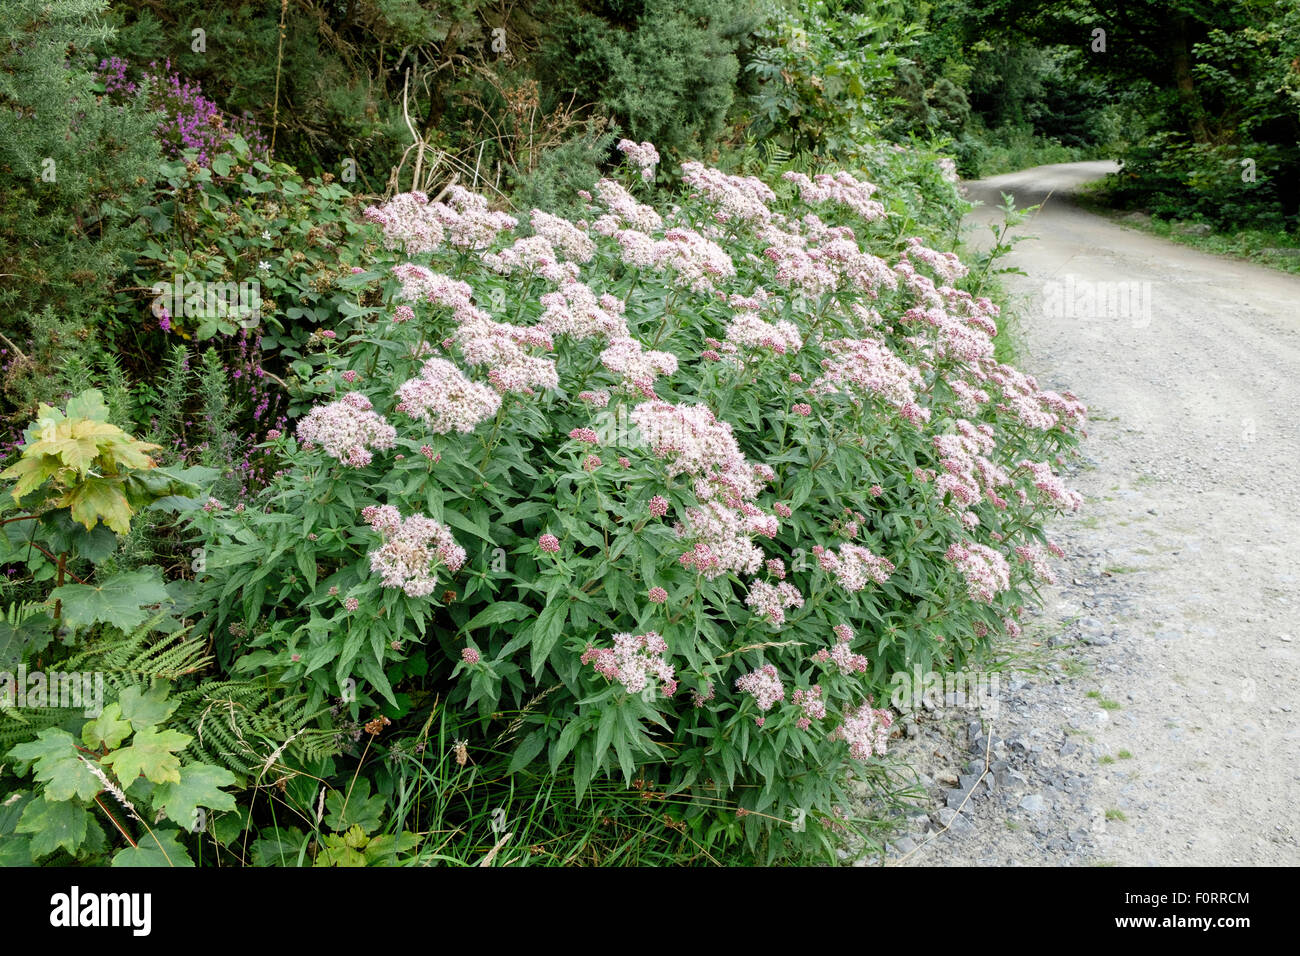 Flowering Hemp agrimony (Eupatorium cannabinum) plant growing wild by a forest track. Pentraeth Forest, Anglesey, - Stock Image